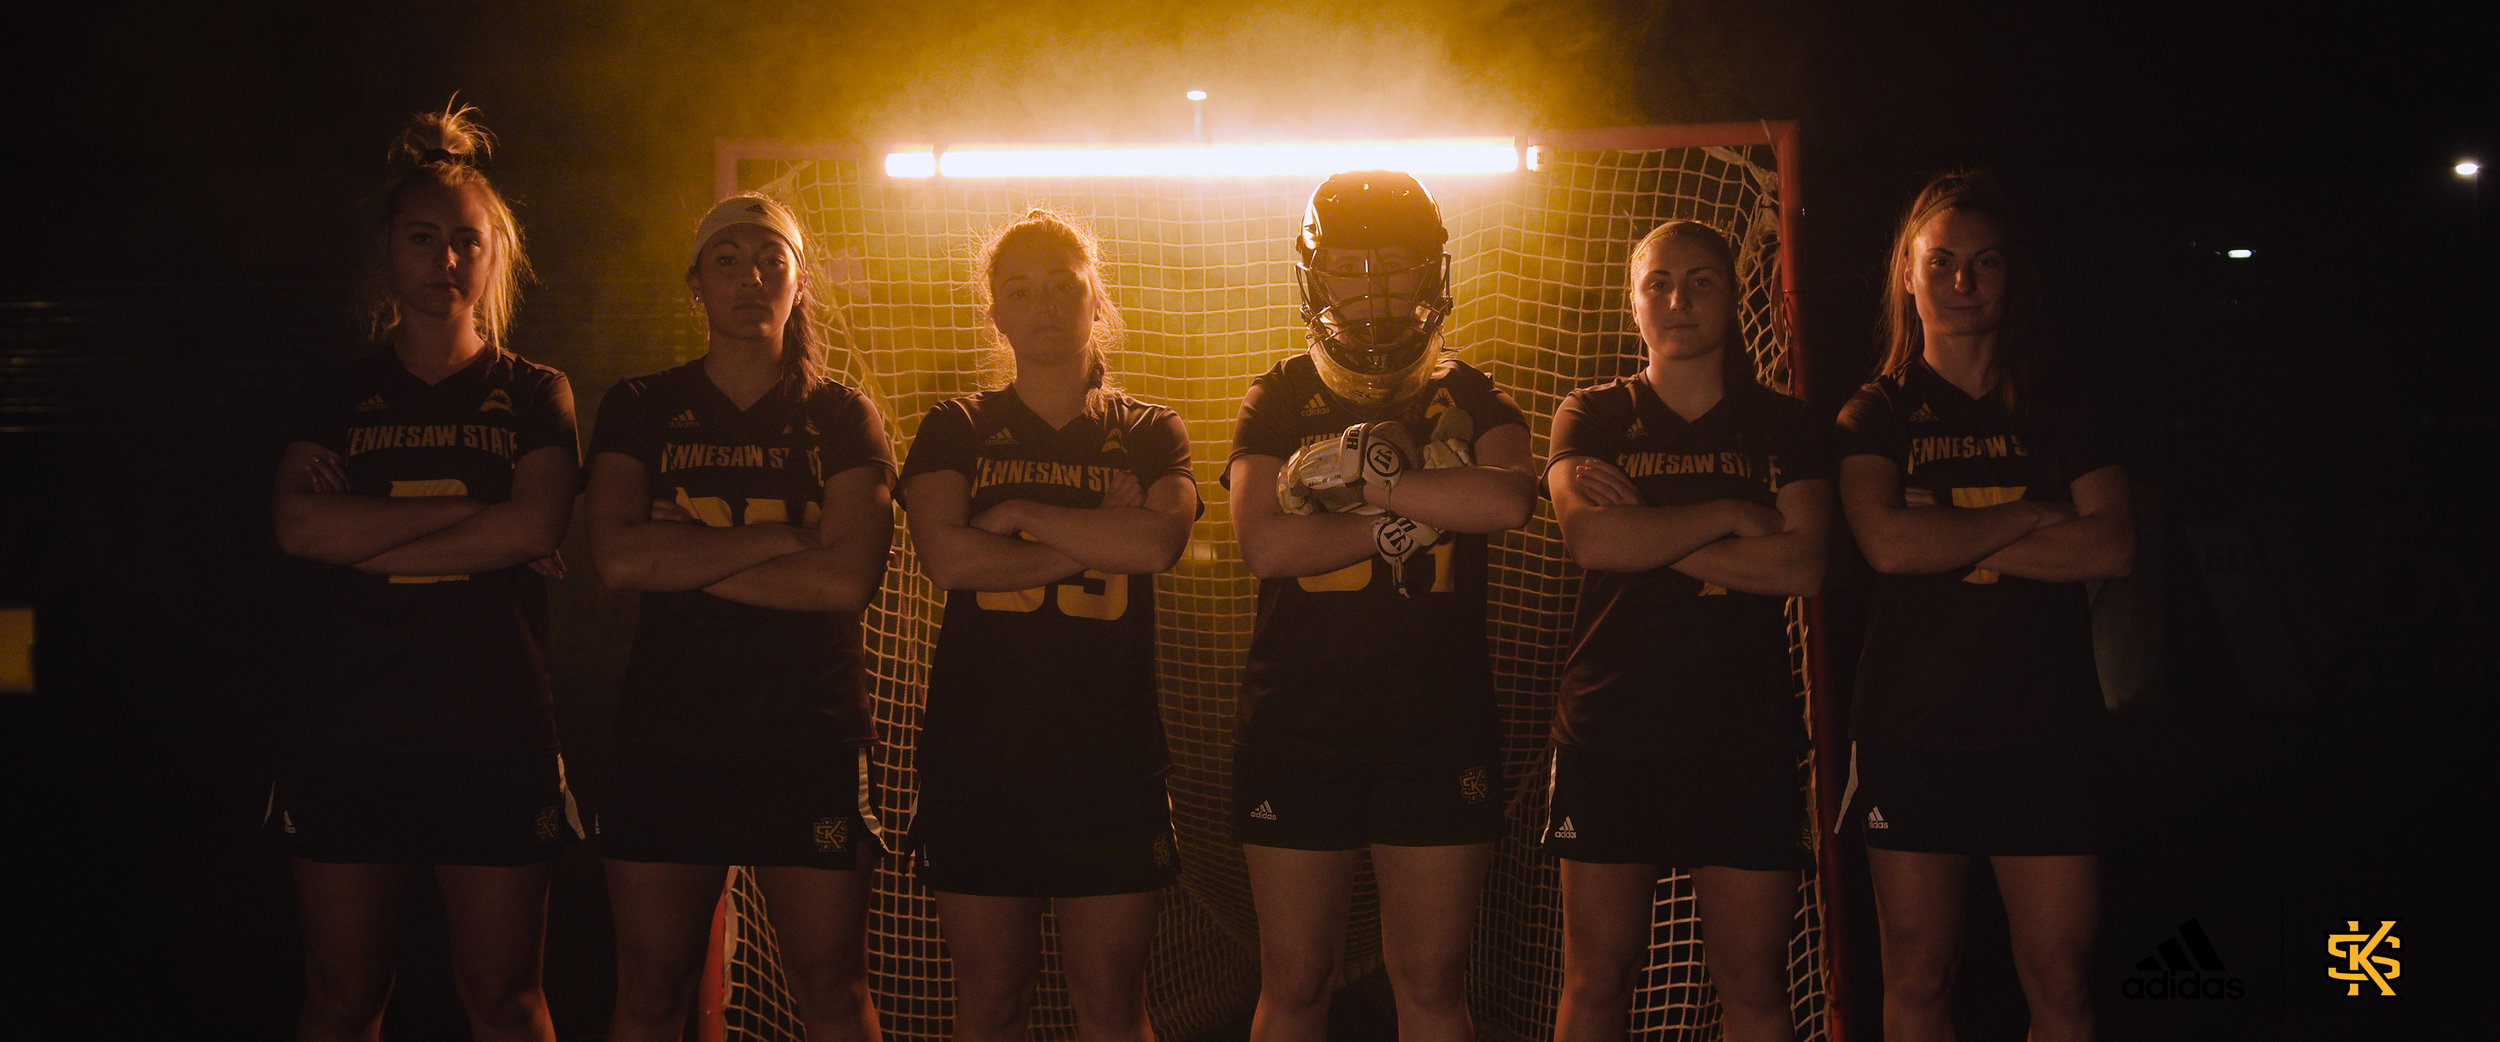 Kennesaw State Lacrosse -